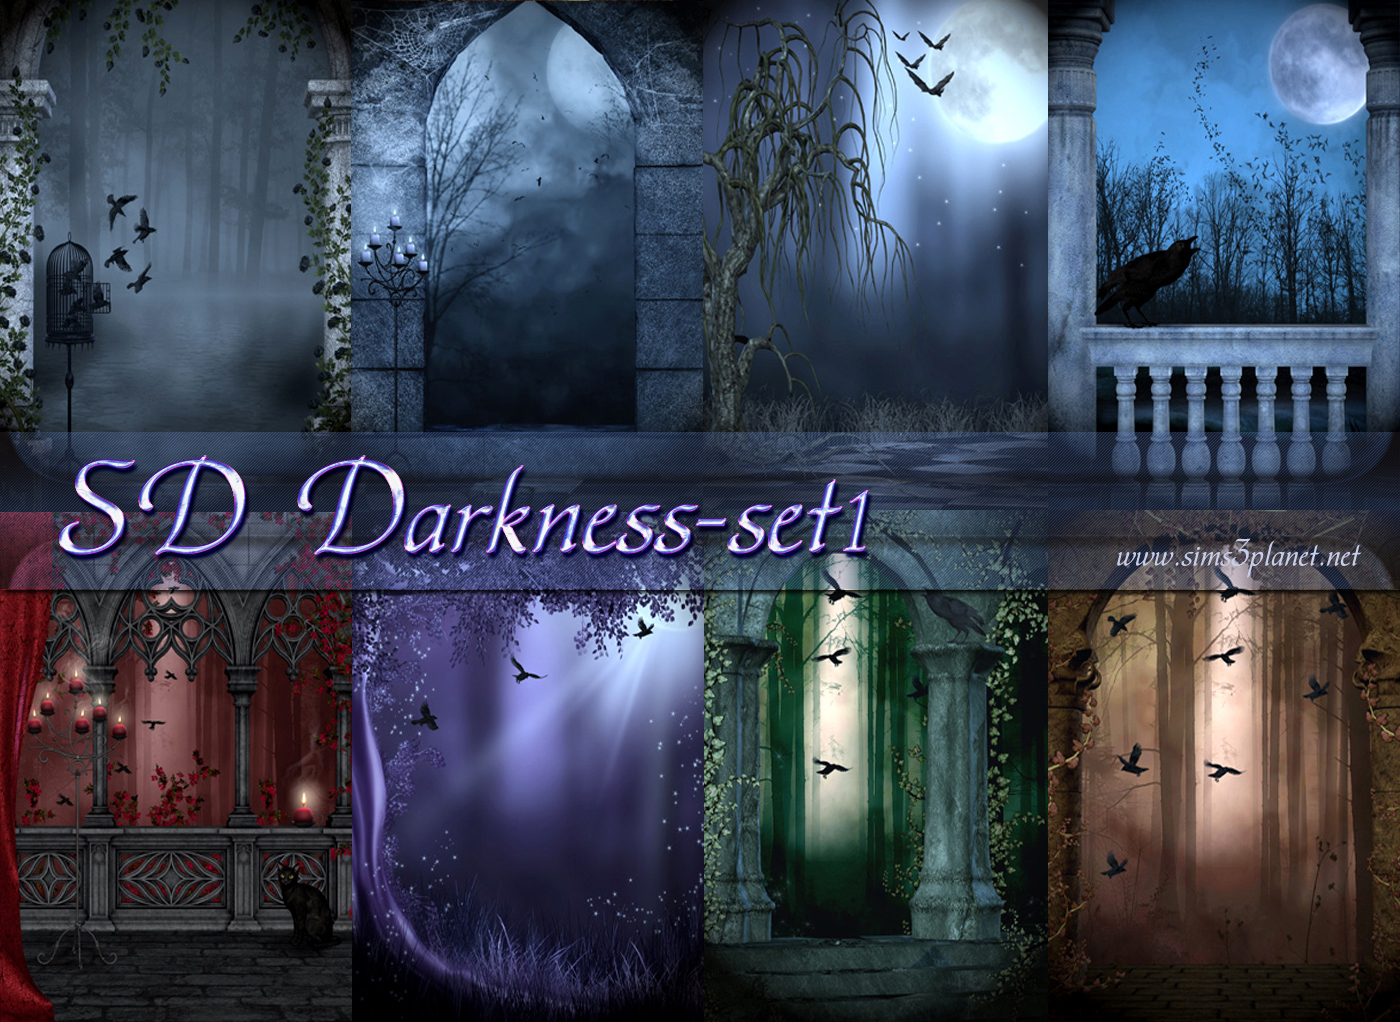 SD Darkness set1 backgrounds by Torri